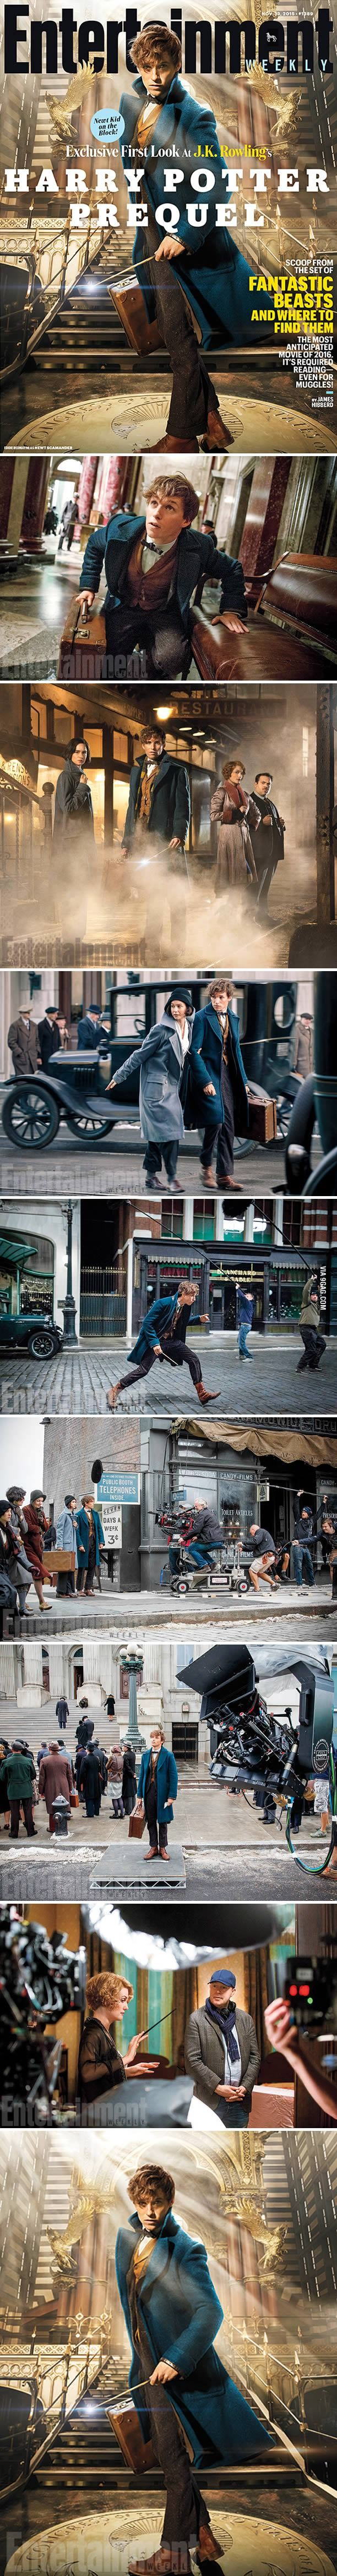 """First Photos From Harry Potter Prequel """"Fantastic Beasts And Where To Find Them"""""""